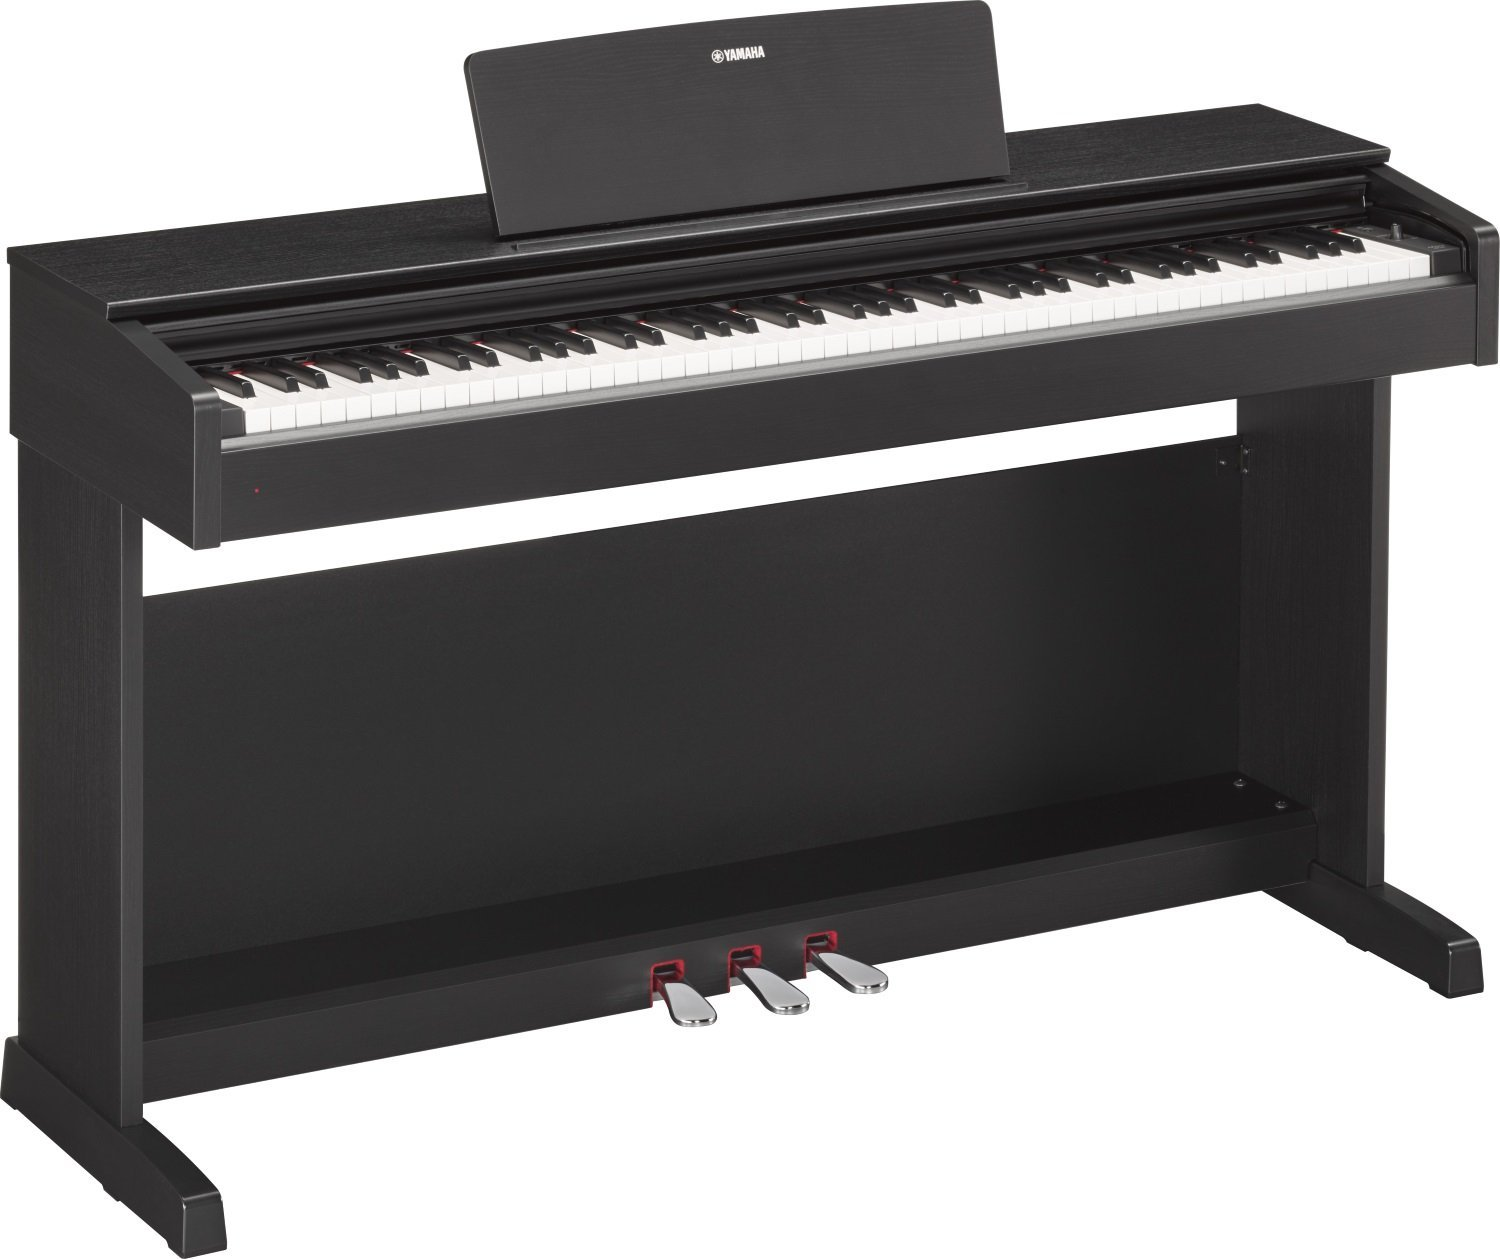 Pianoforte Digitale Yamaha Arius YDP-143 Nero